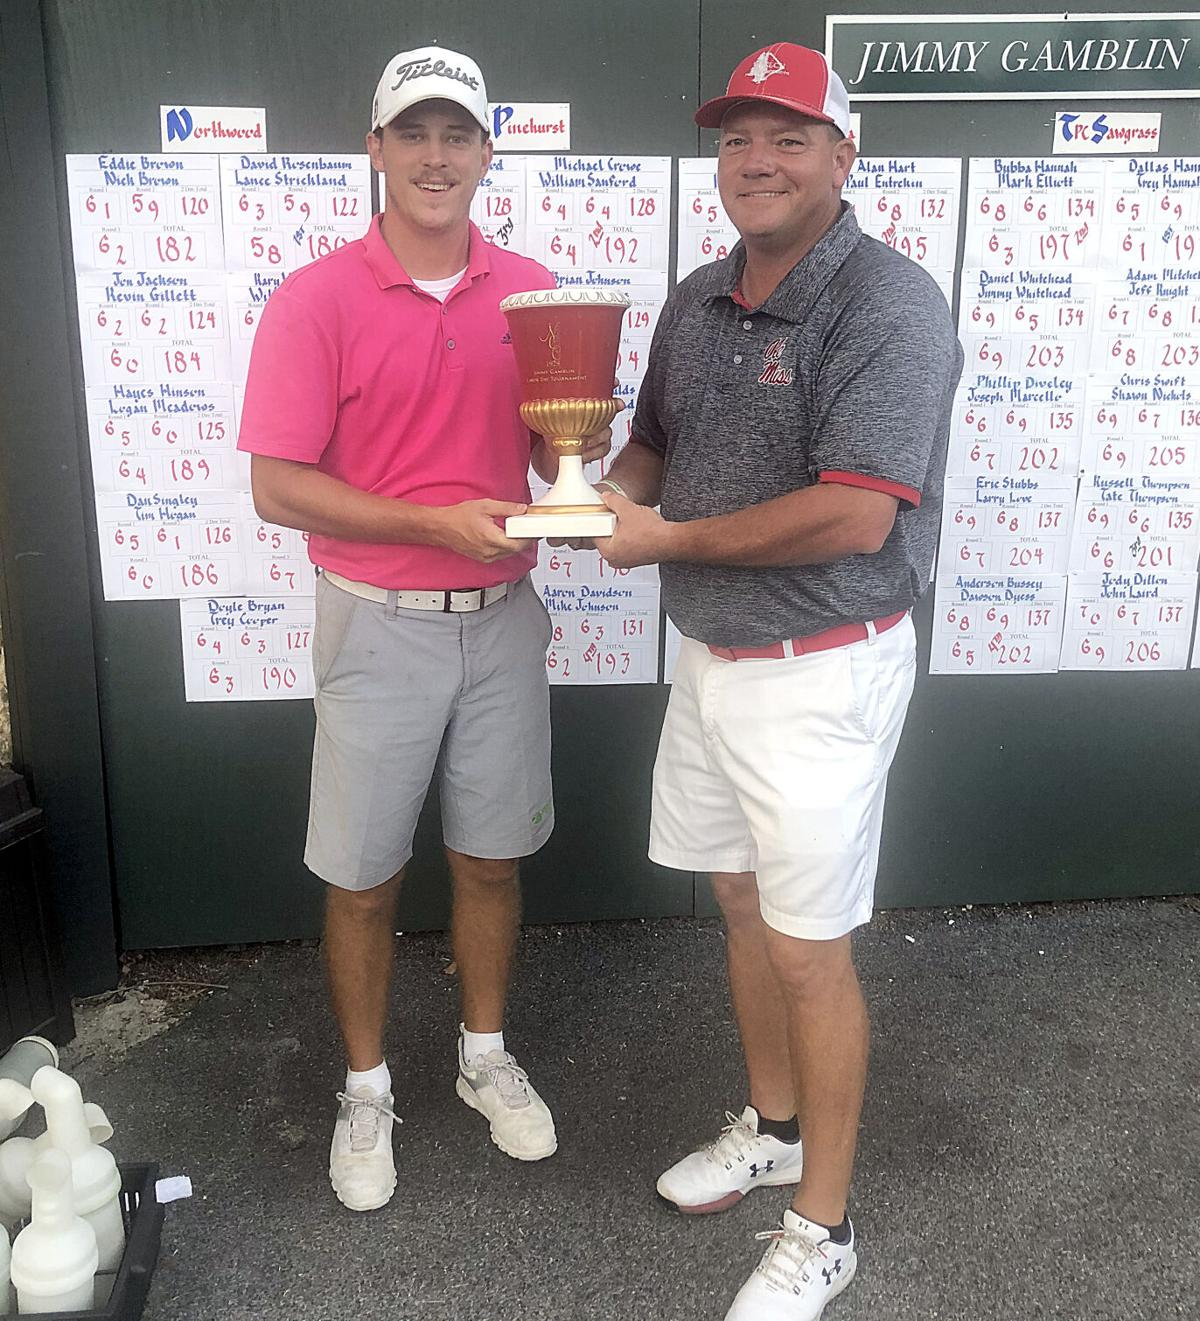 Jimmy Gamblin Labor Day Tournament winners